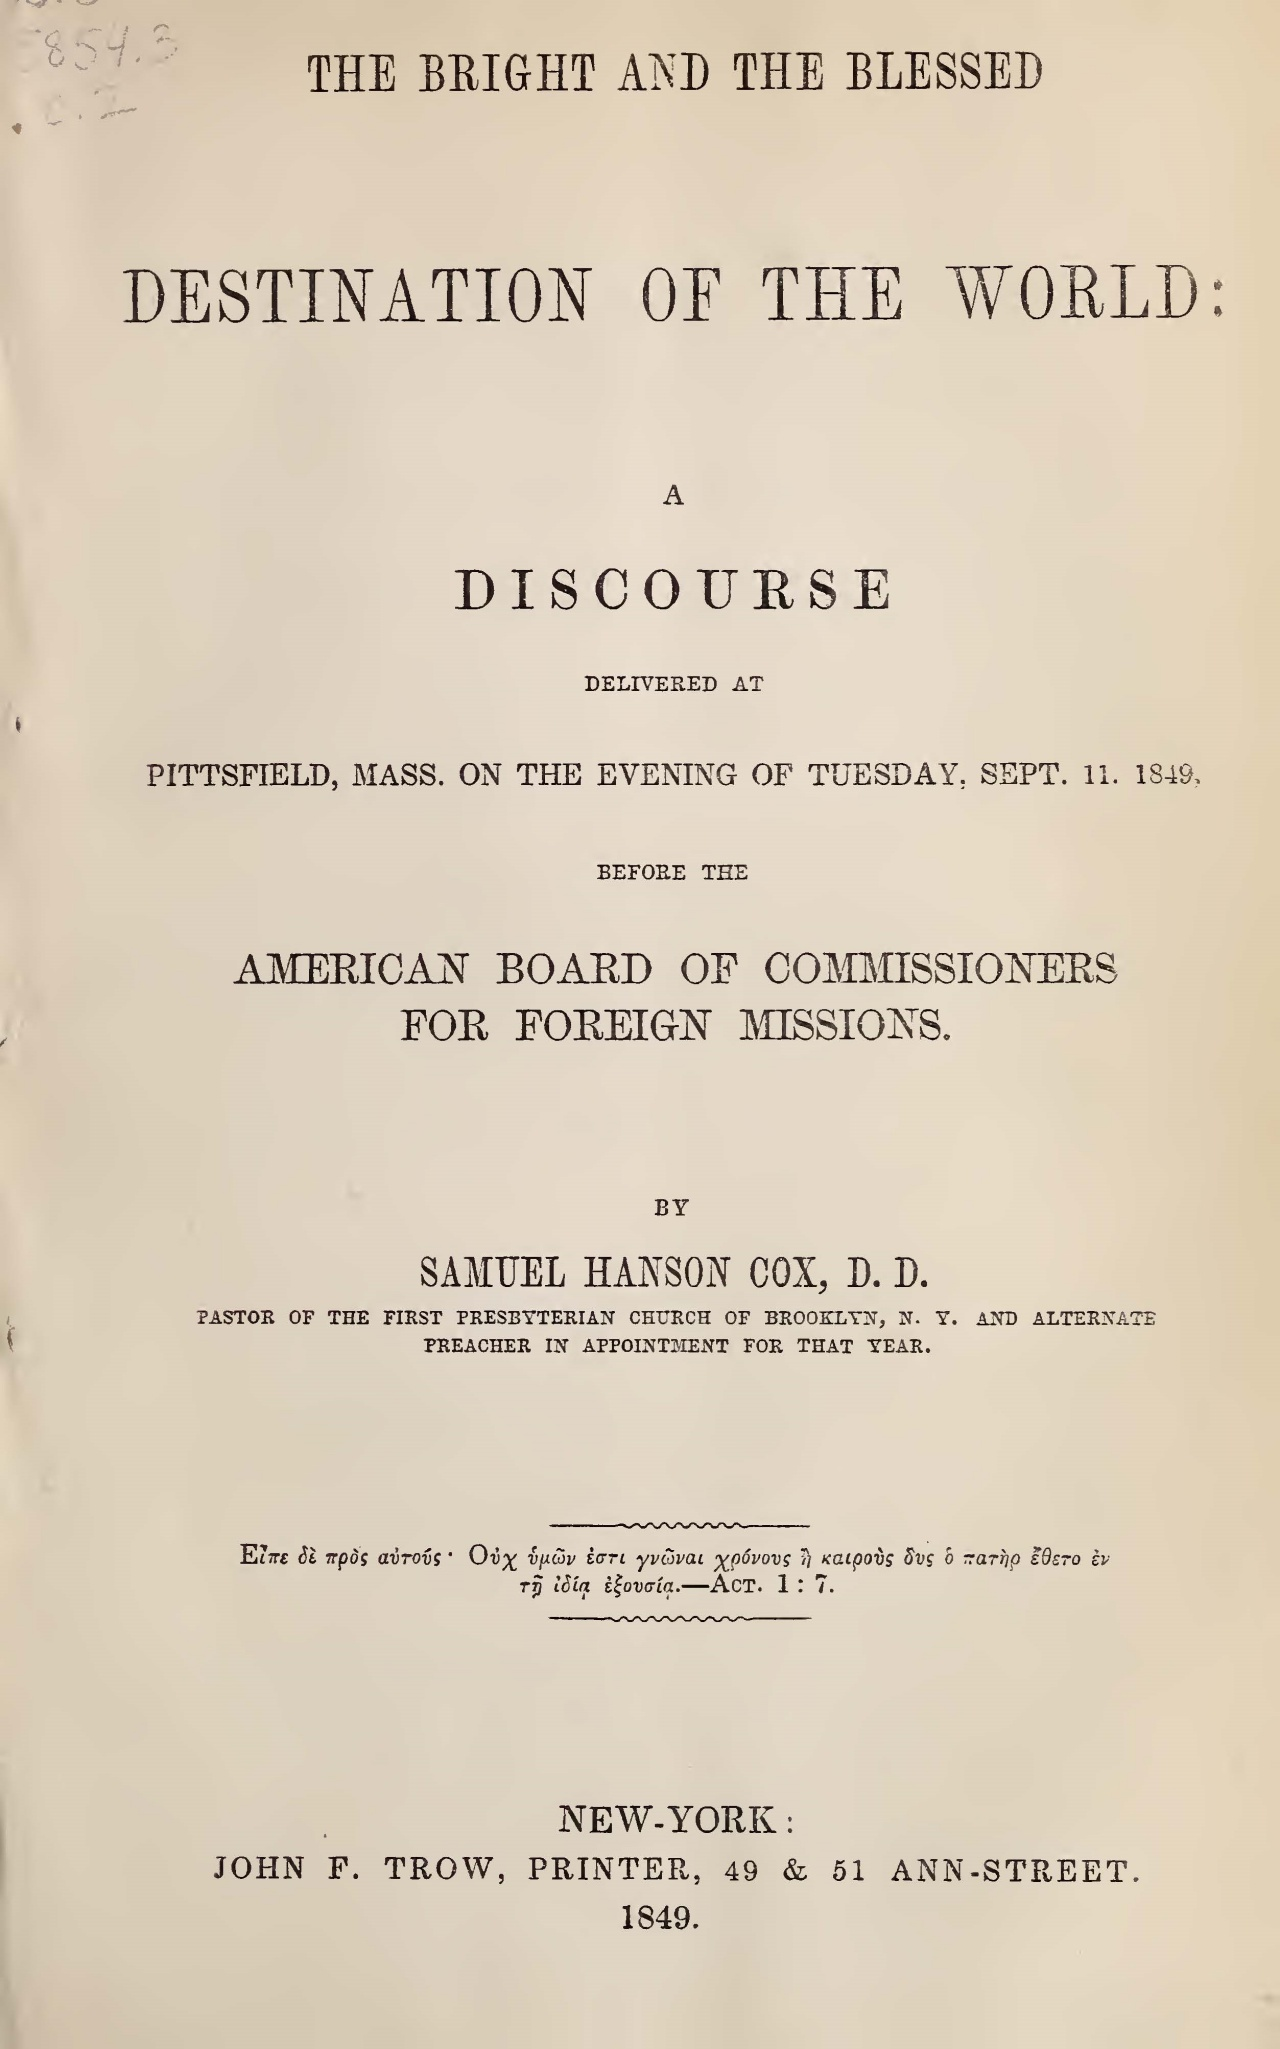 Cox, Samuel Hanson, The Bright and the Blessed Destination of the World Title Page.jpg